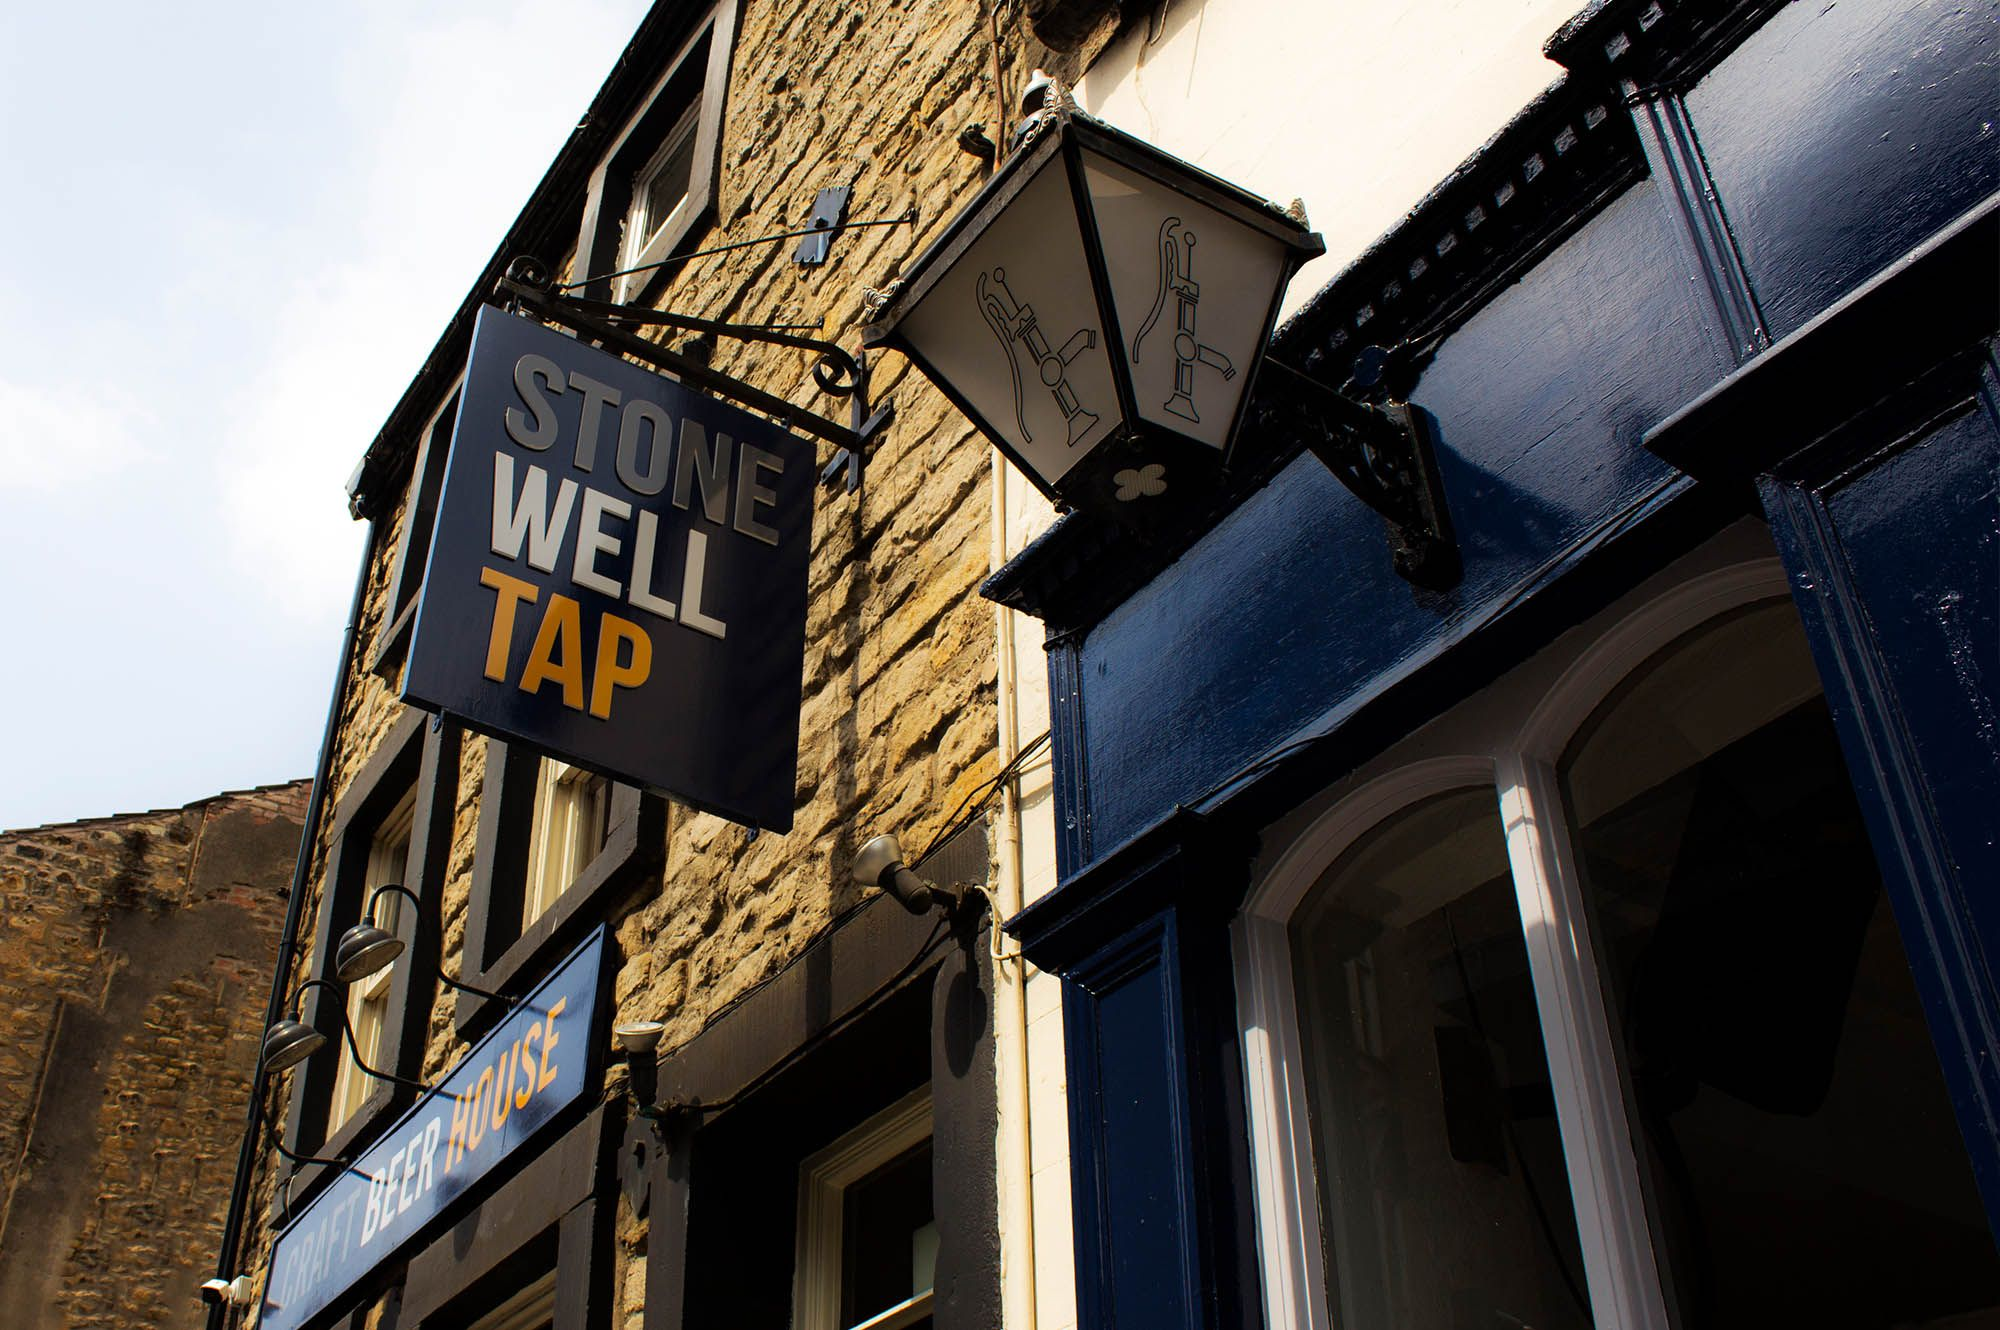 Stone Well Tap